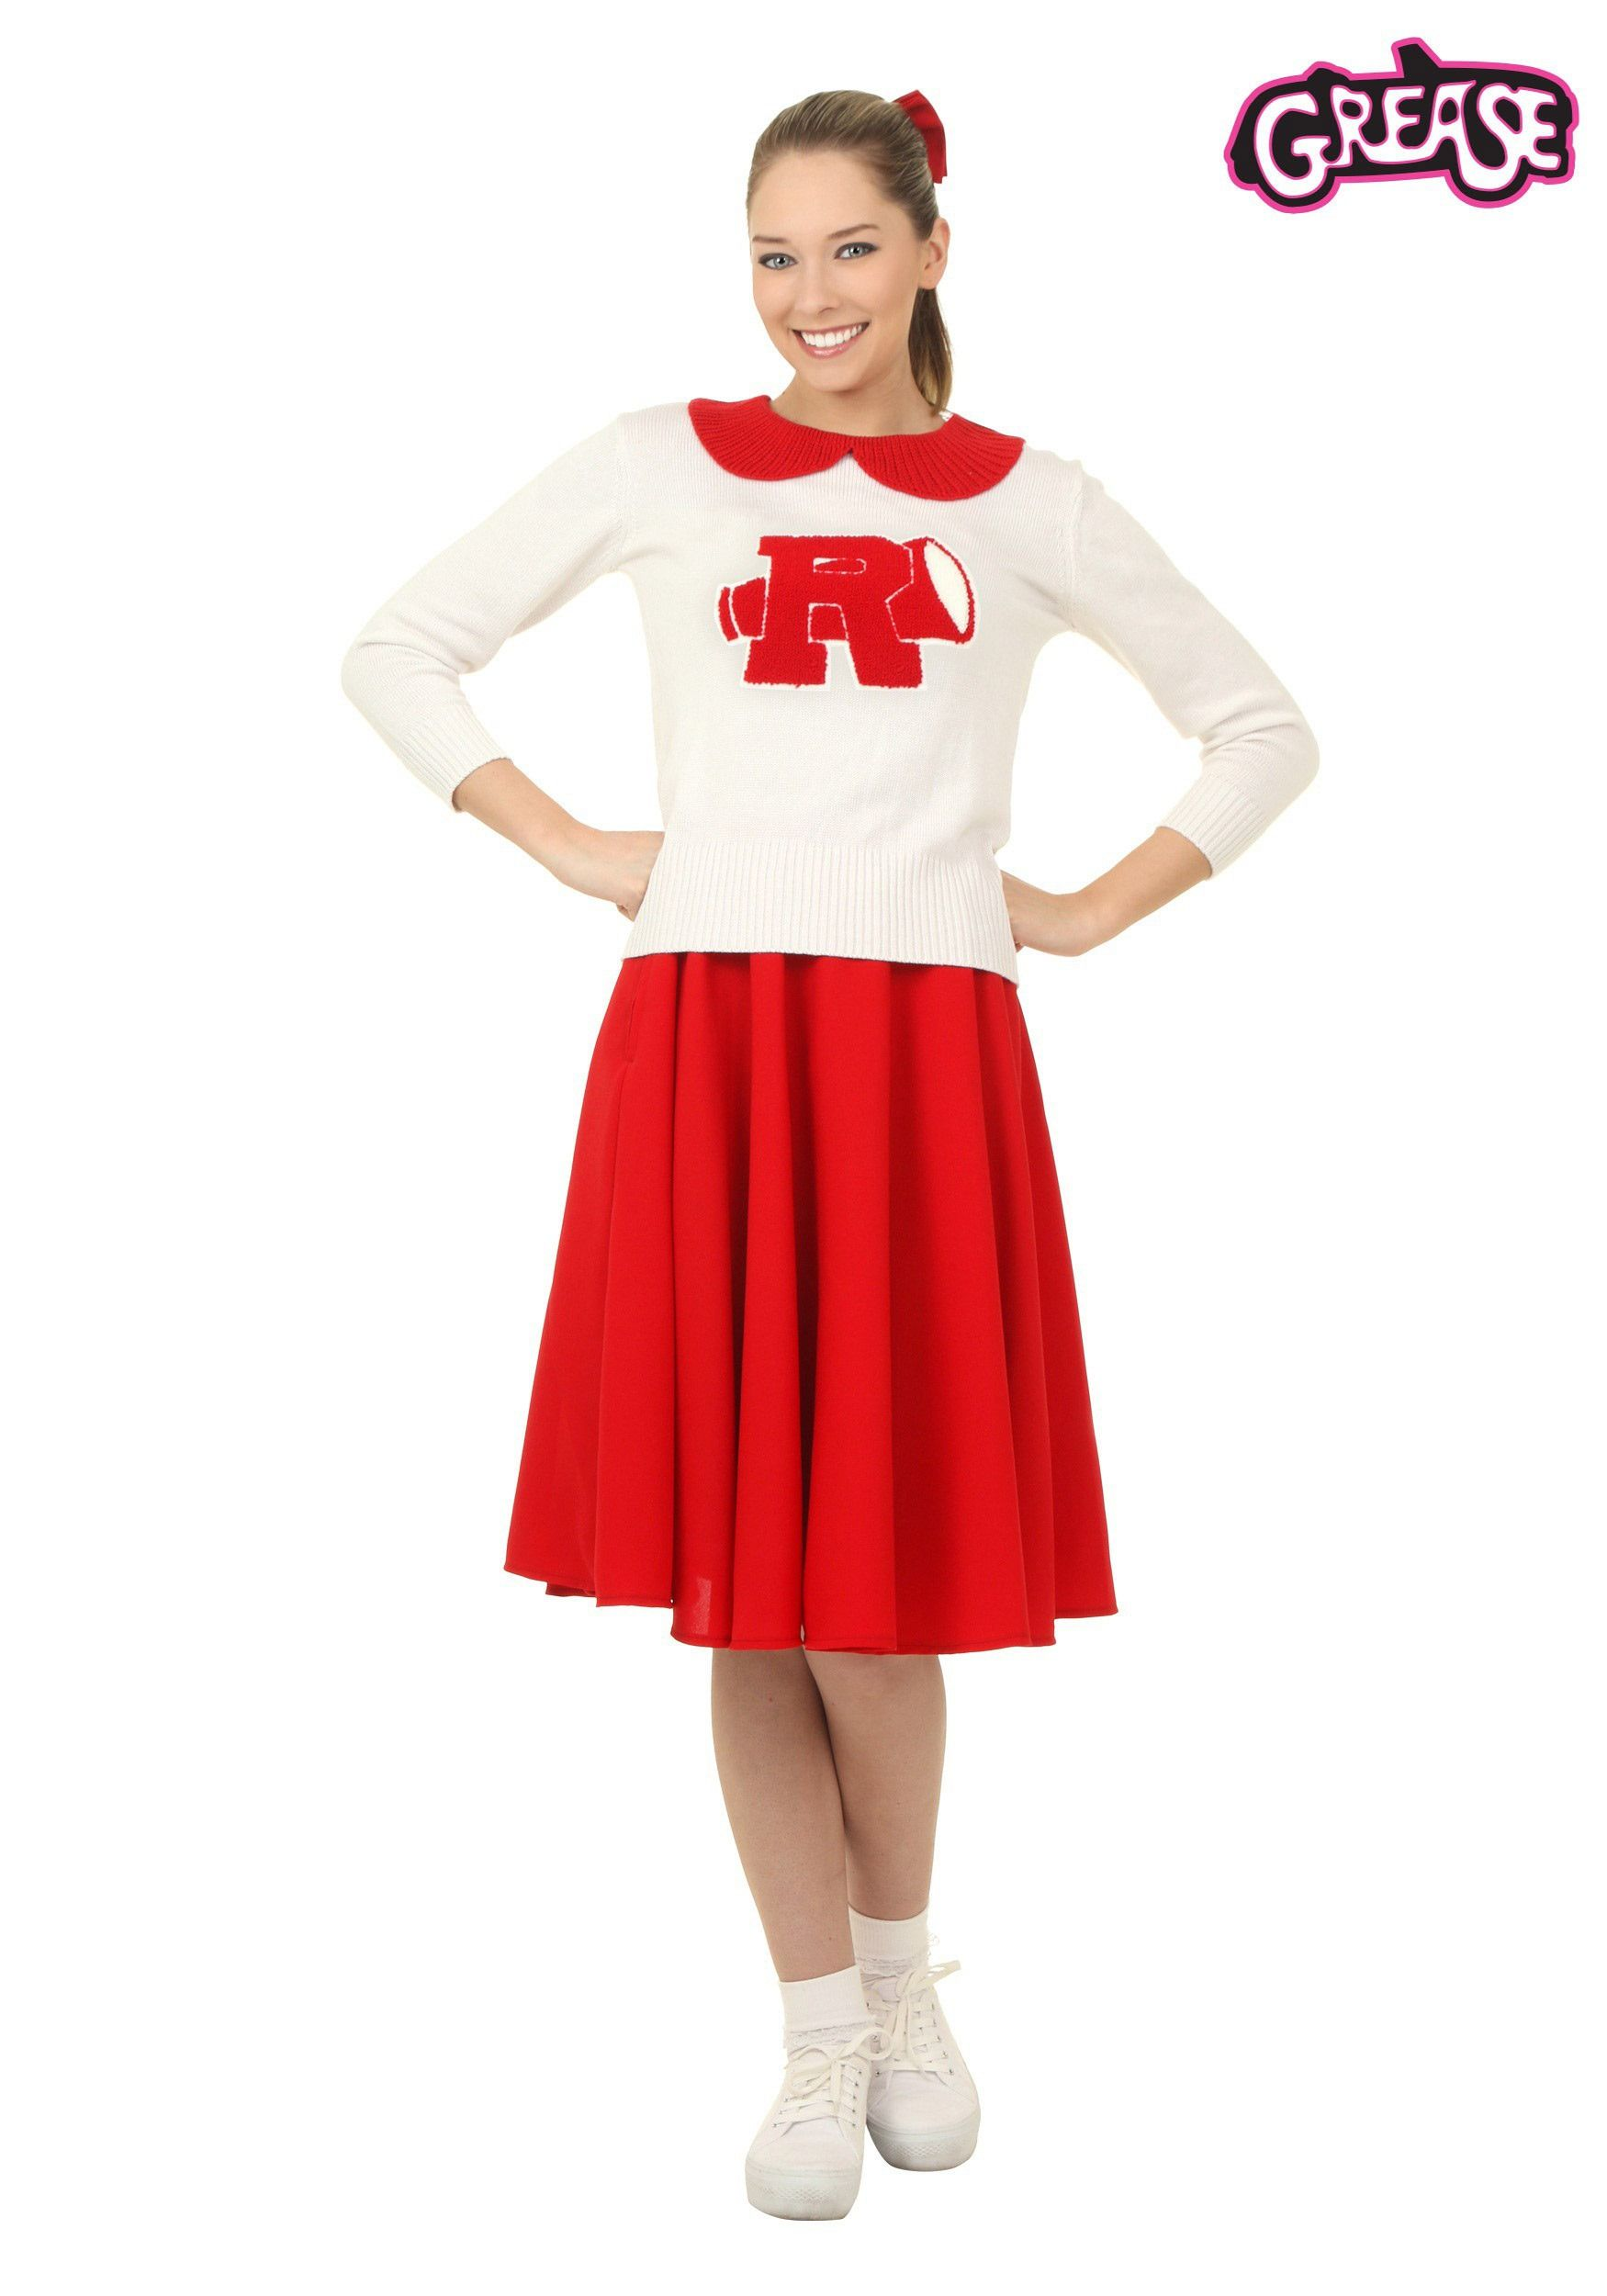 6849a476449a Women's Grease Rydell High Cheerleader Costume | Halloween | Grease ...